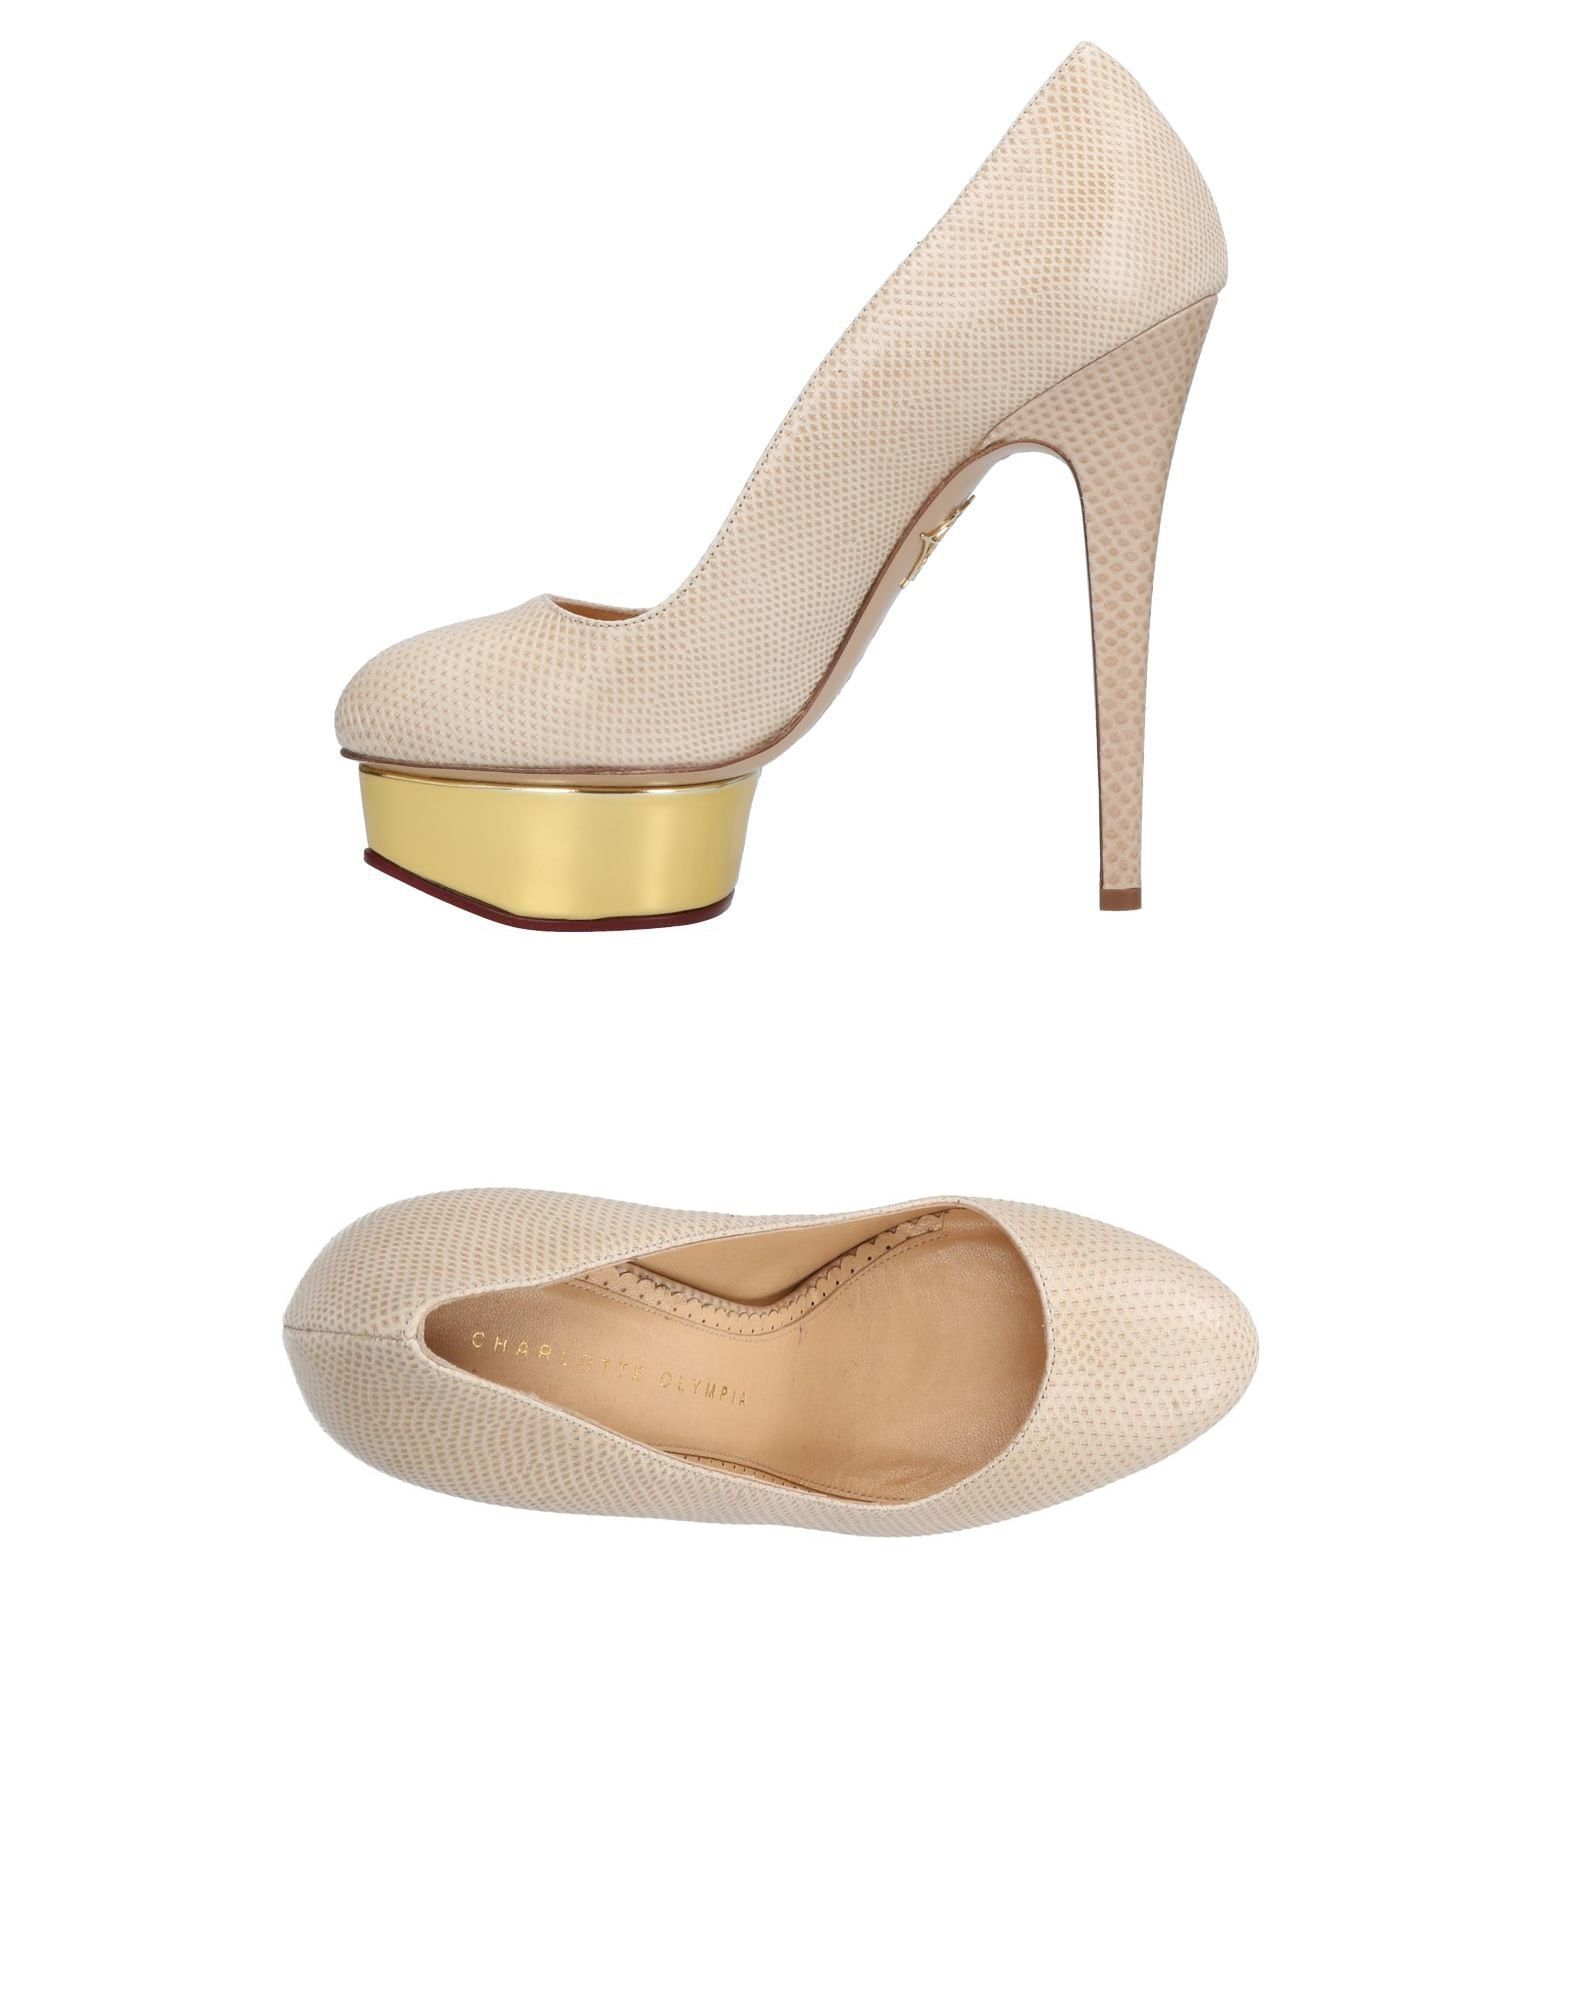 Charlotte Olympia Pumps Damen  11492557TO 11492557TO 11492557TO Beliebte Schuhe a87972